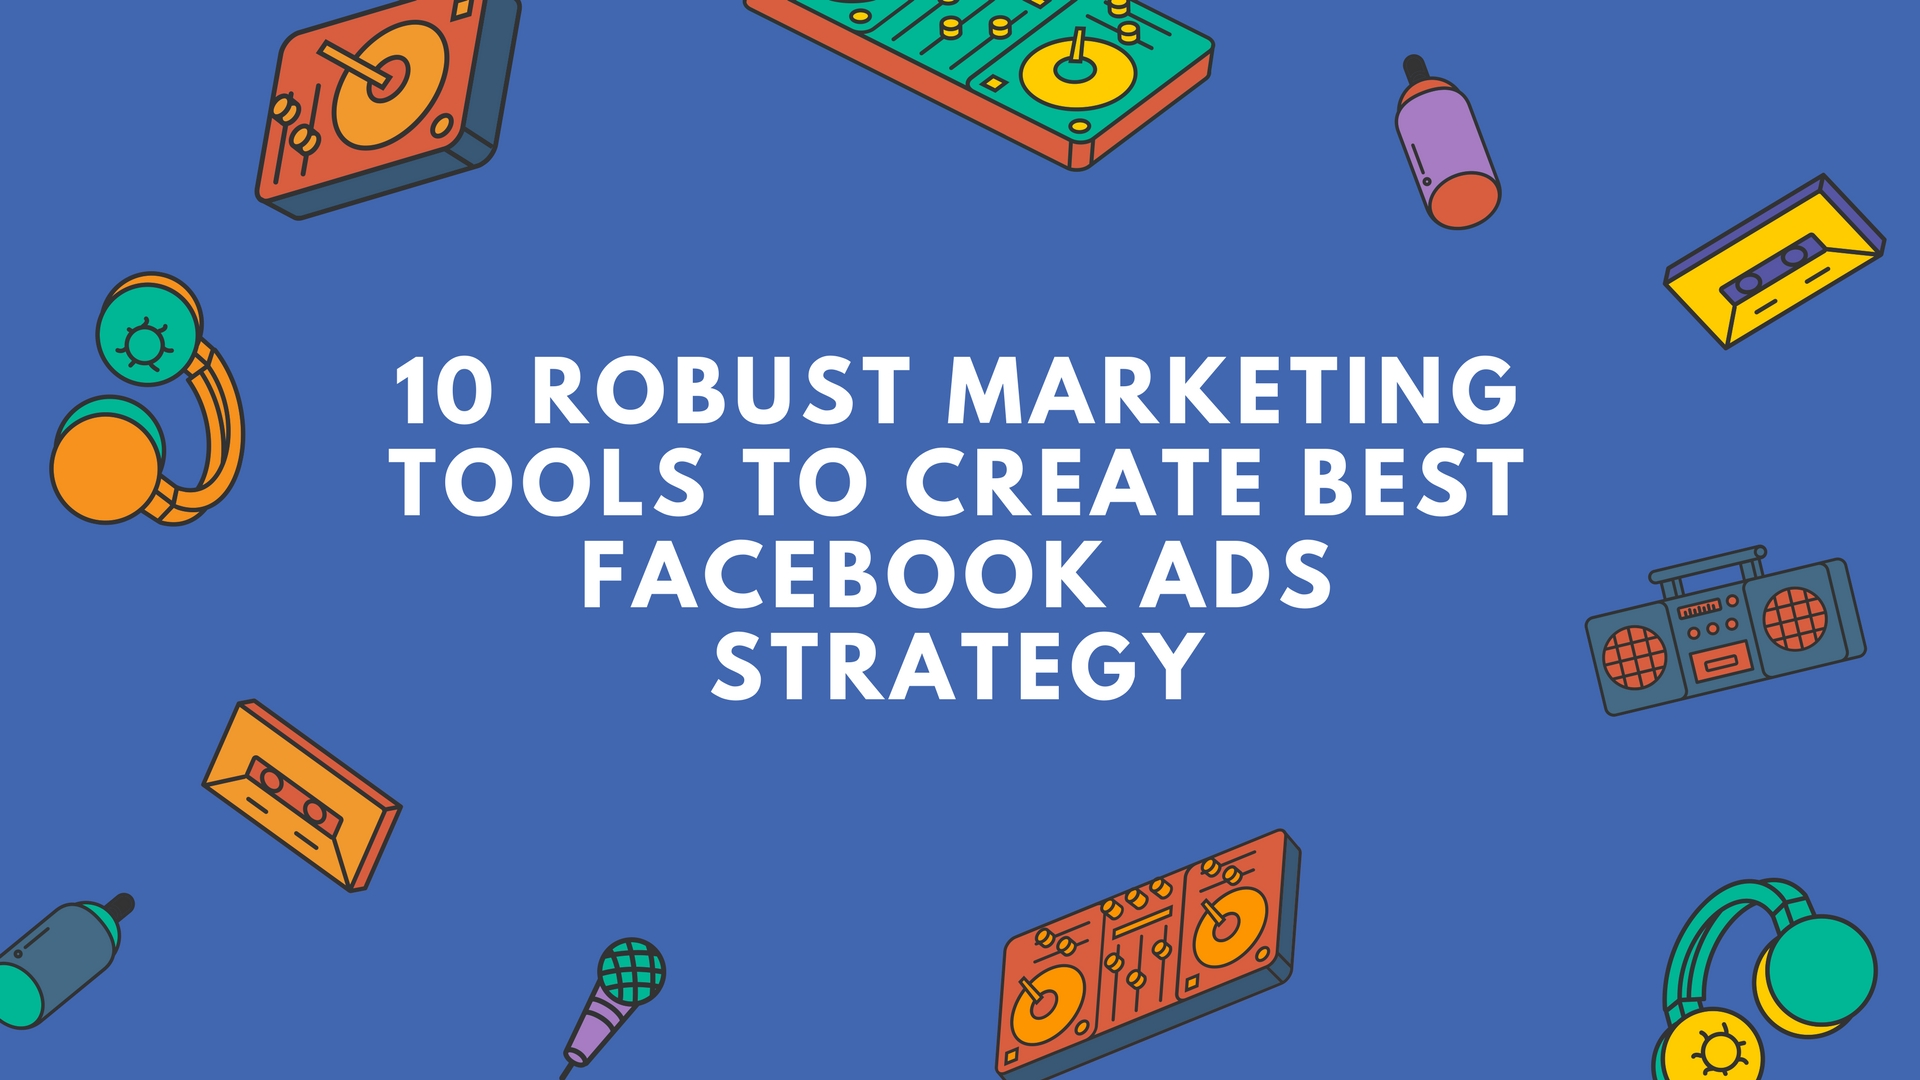 10 Robust Marketing Tools to Create Best Facebook Ads Strategy